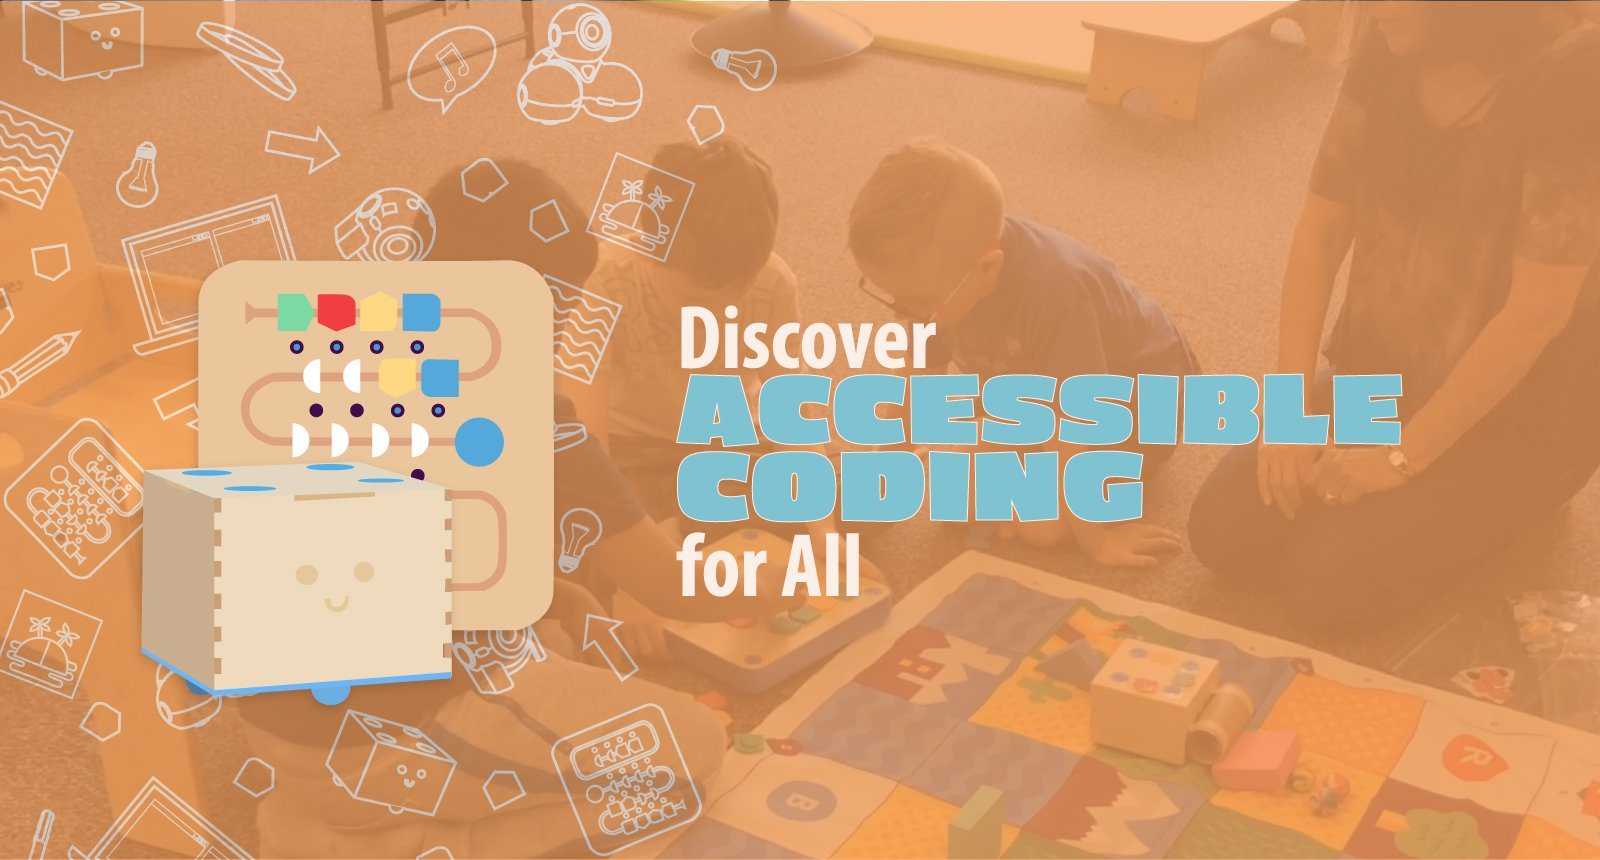 Explore our new Accessible Coding collection